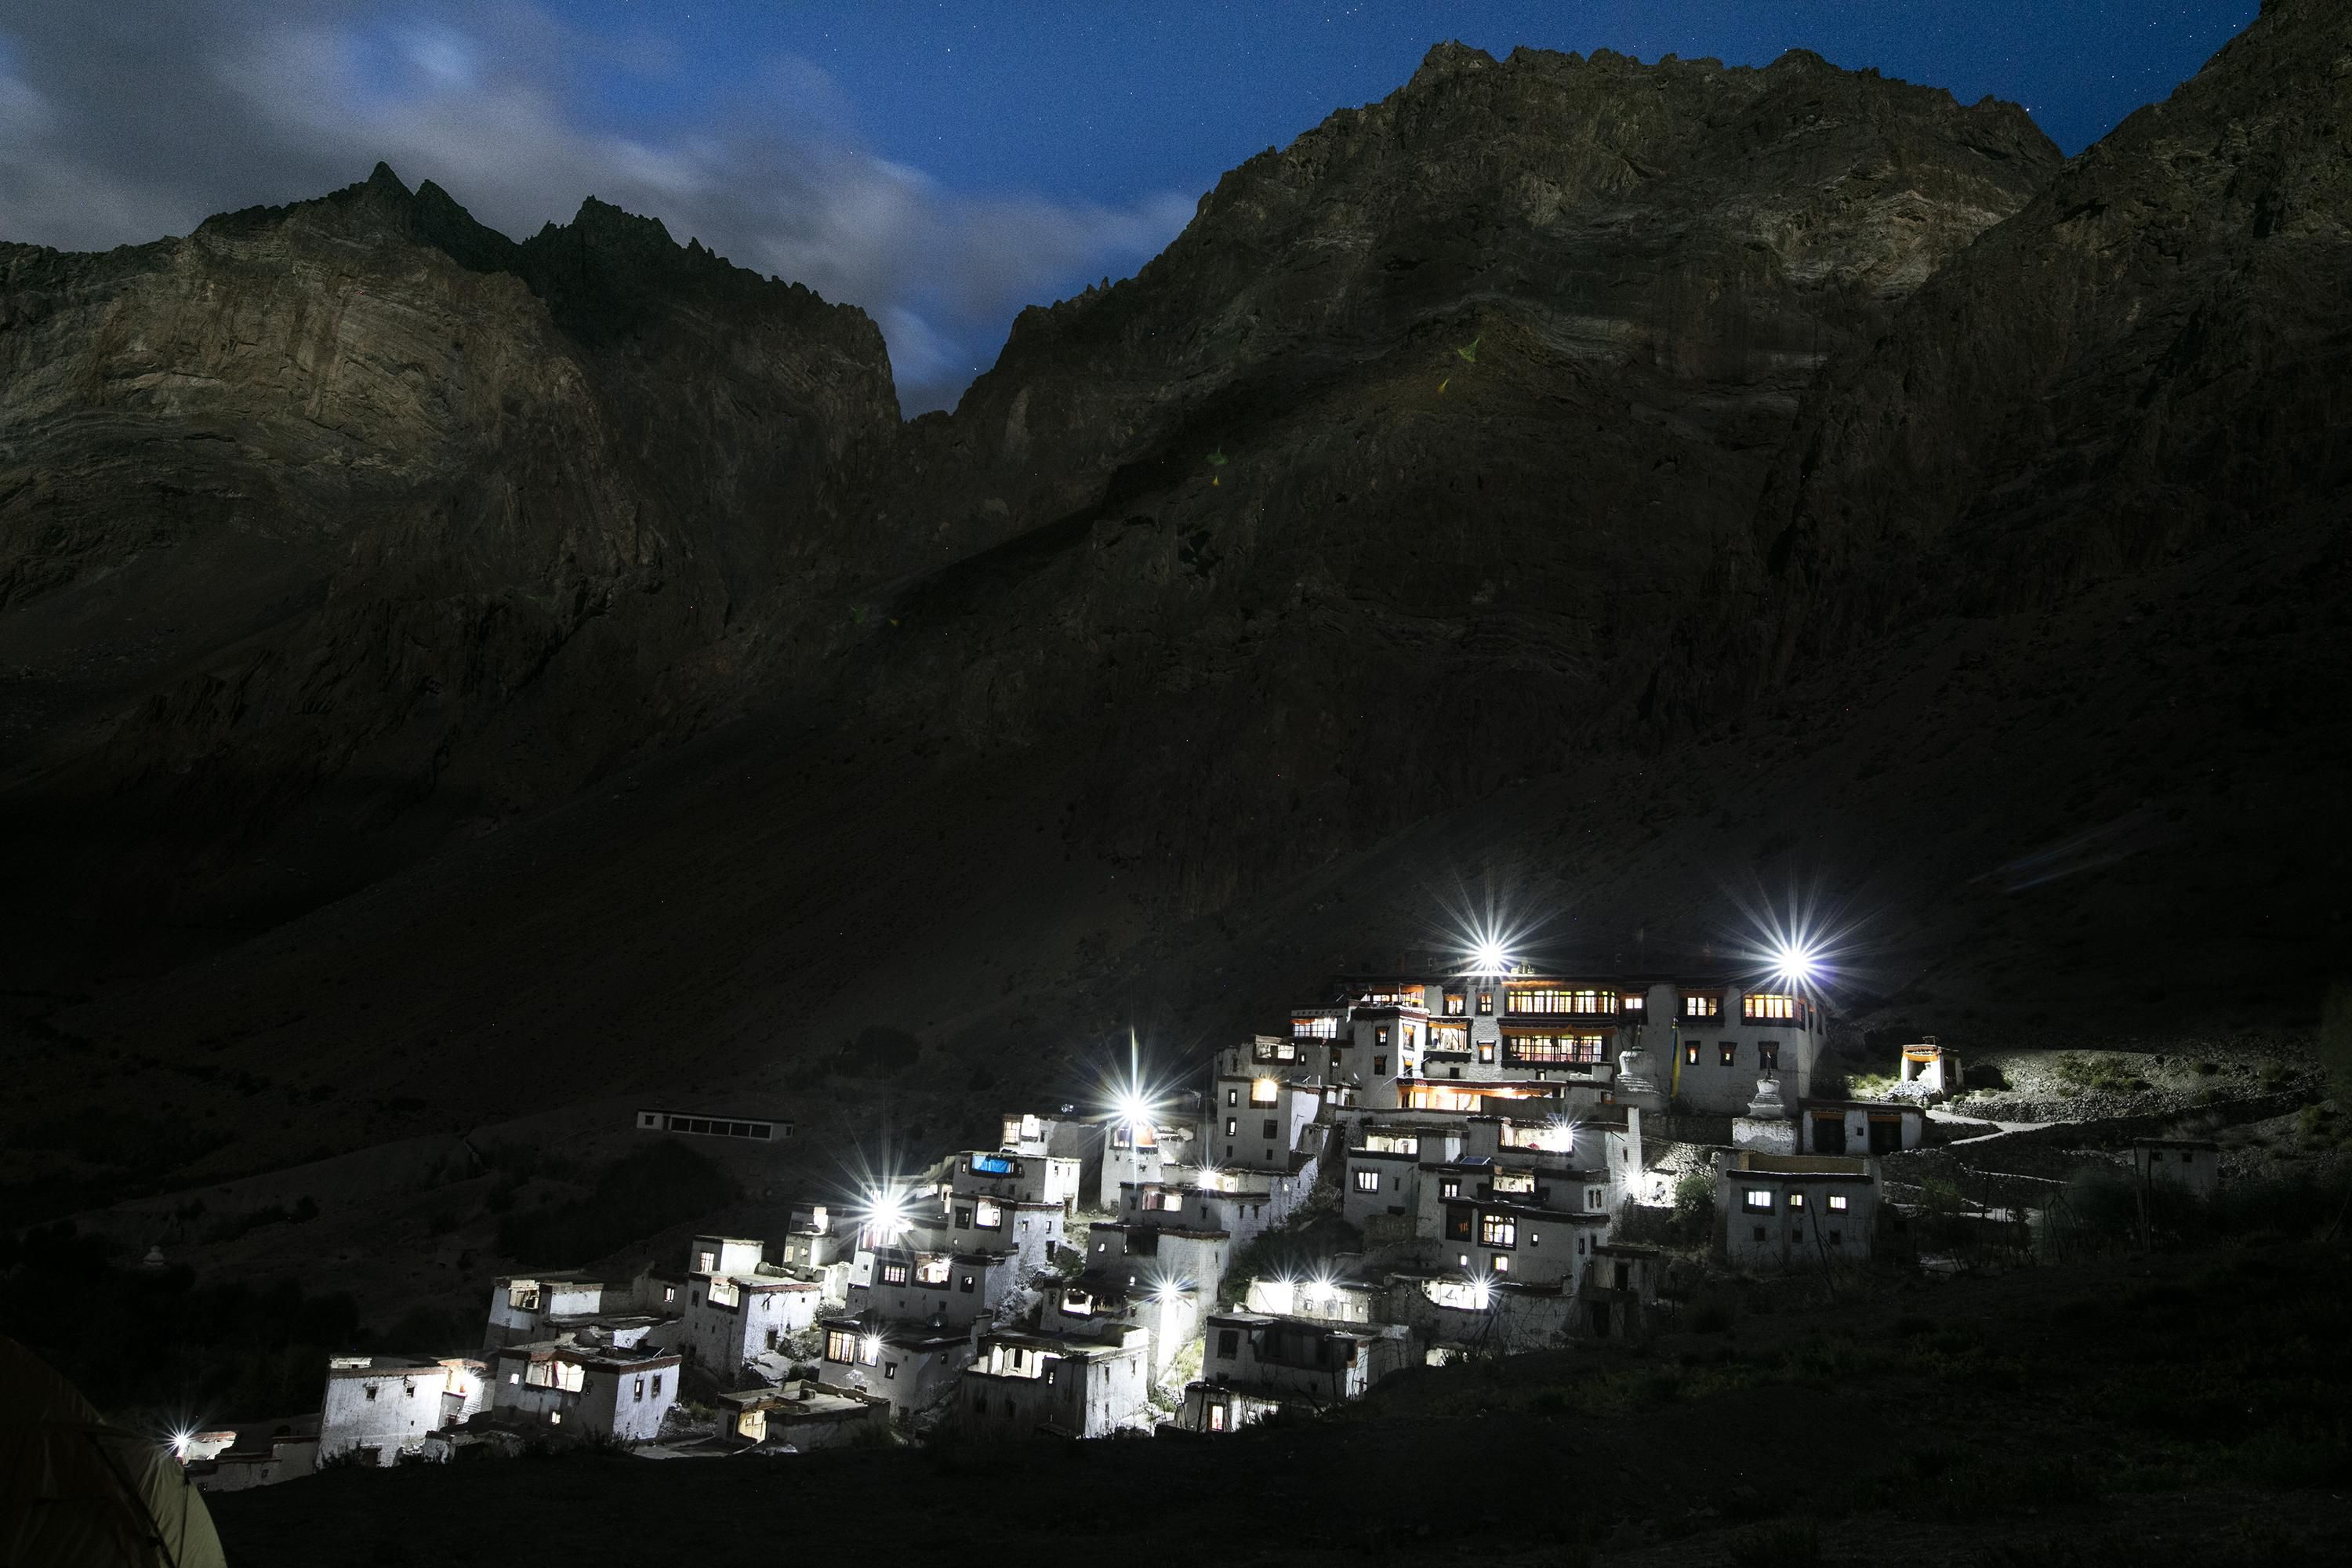 A village lit up with lights on the side of a mountain.